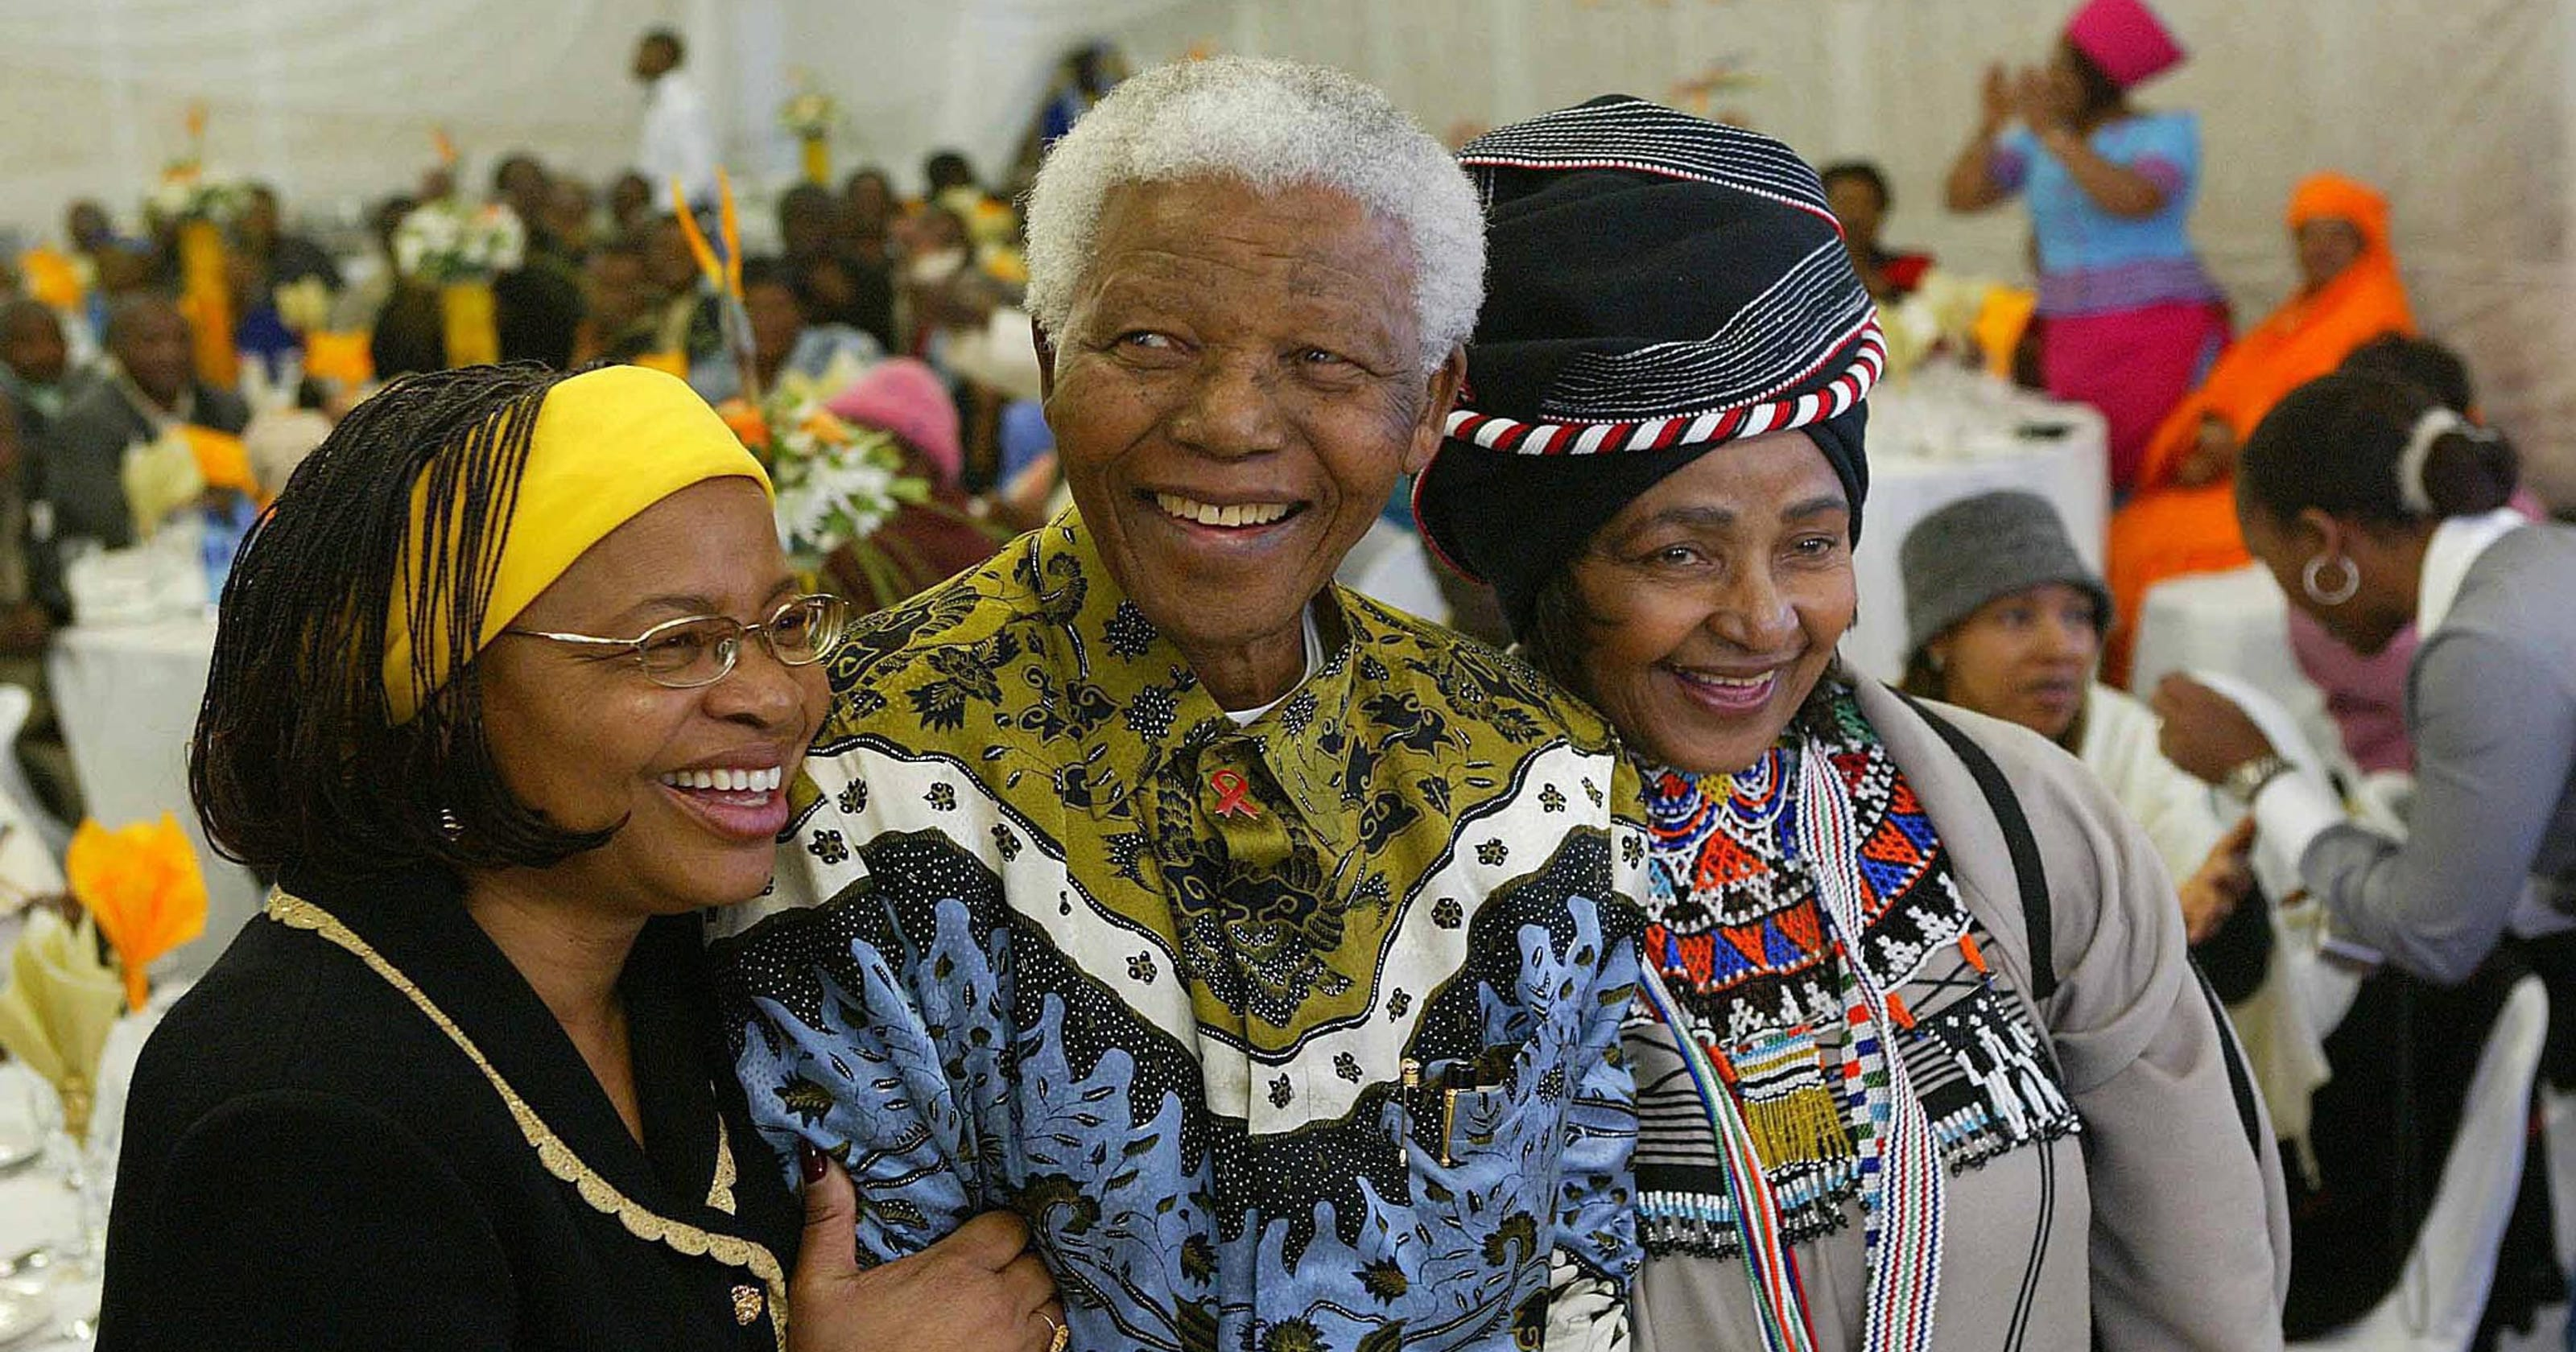 Nelson Mandela Would Have Turned 100 Years Old Here Are 15 Quotes